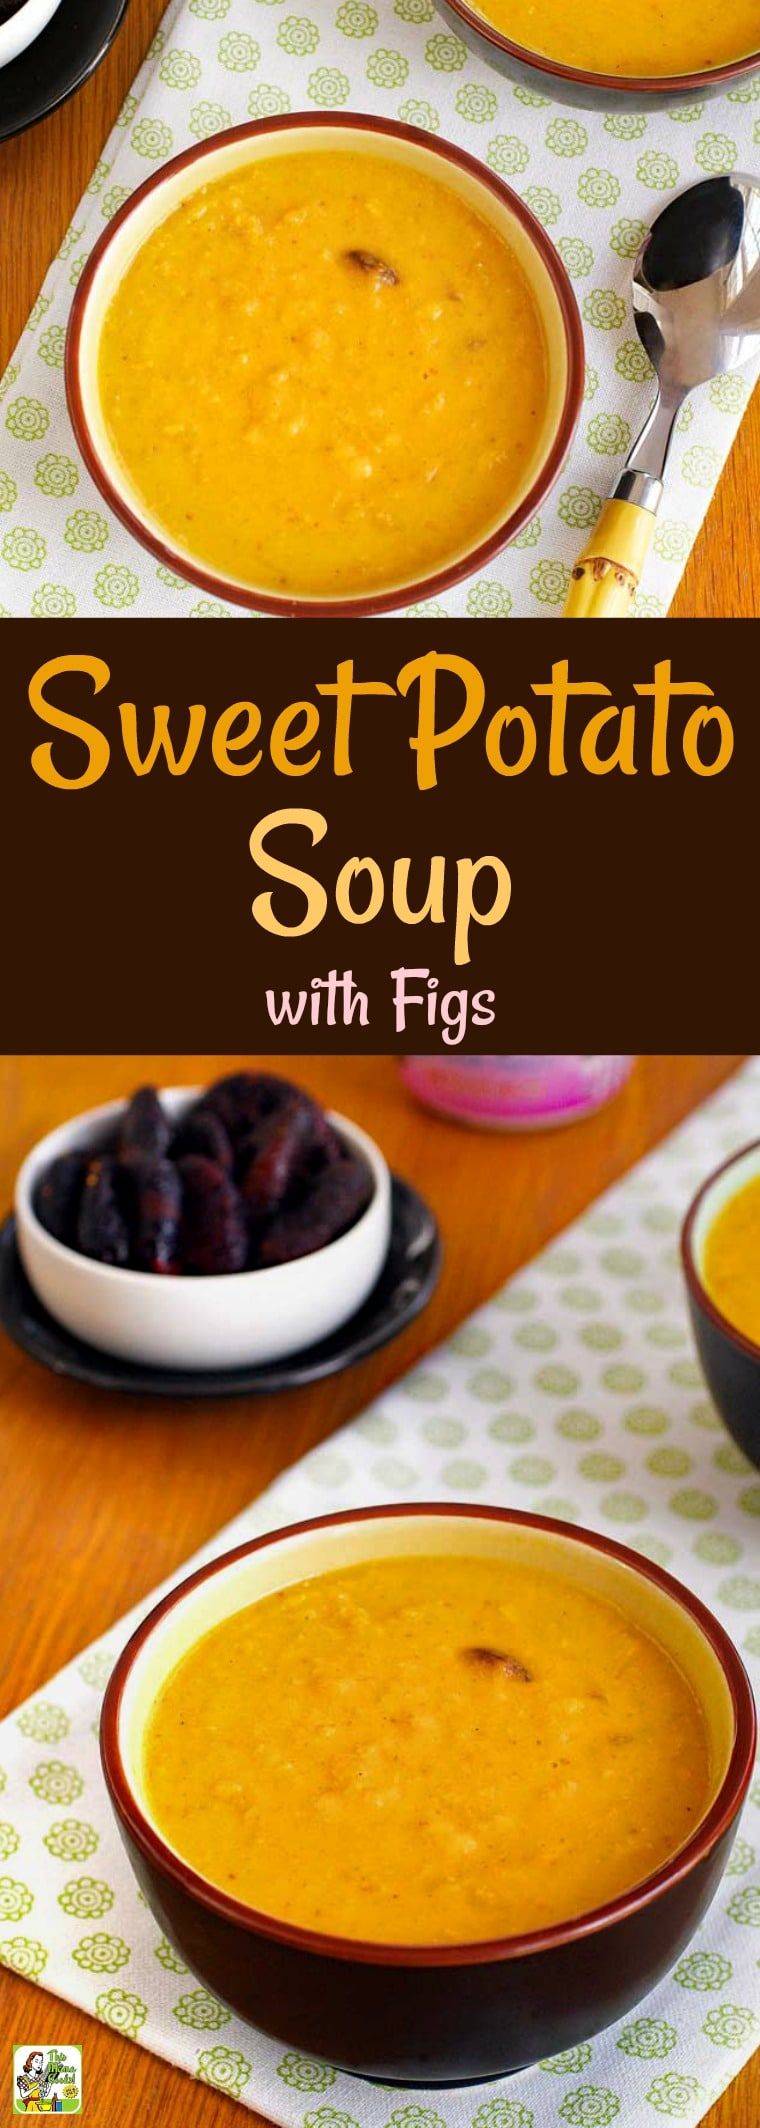 Pair this healthy, homemade sweet potato soup with a sandwich or salad for an easy weeknight dinner. This curry sweet potato soup recipe uses Greek yogurt and figs! (Don\'t like curry? Use Herbes de Provence instead.) This vegetarian sweet potato soup works for Meatless Monday, too! #recipe #easy #recipeoftheday #healthyrecipes #glutenfree #easyrecipes #sweetpotatoes #soup #vegetarian #meatlessmonday #yogurt #figs #healthy #healthysoup #homemadesoup